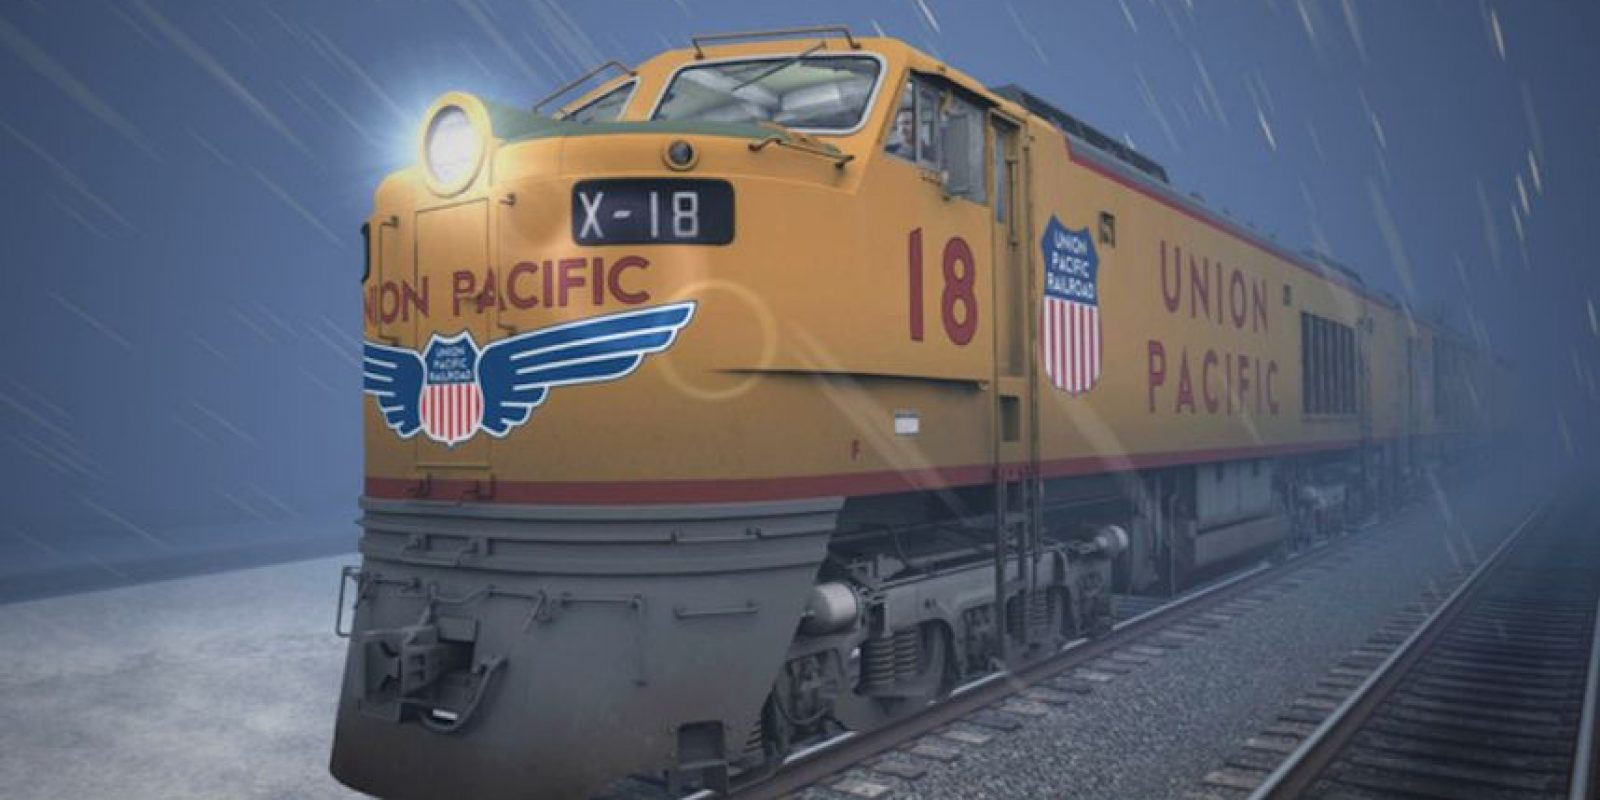 Conduciendo la legendaria locomotora de turbina de gas de Union Pacific Foto: Dovetail Games